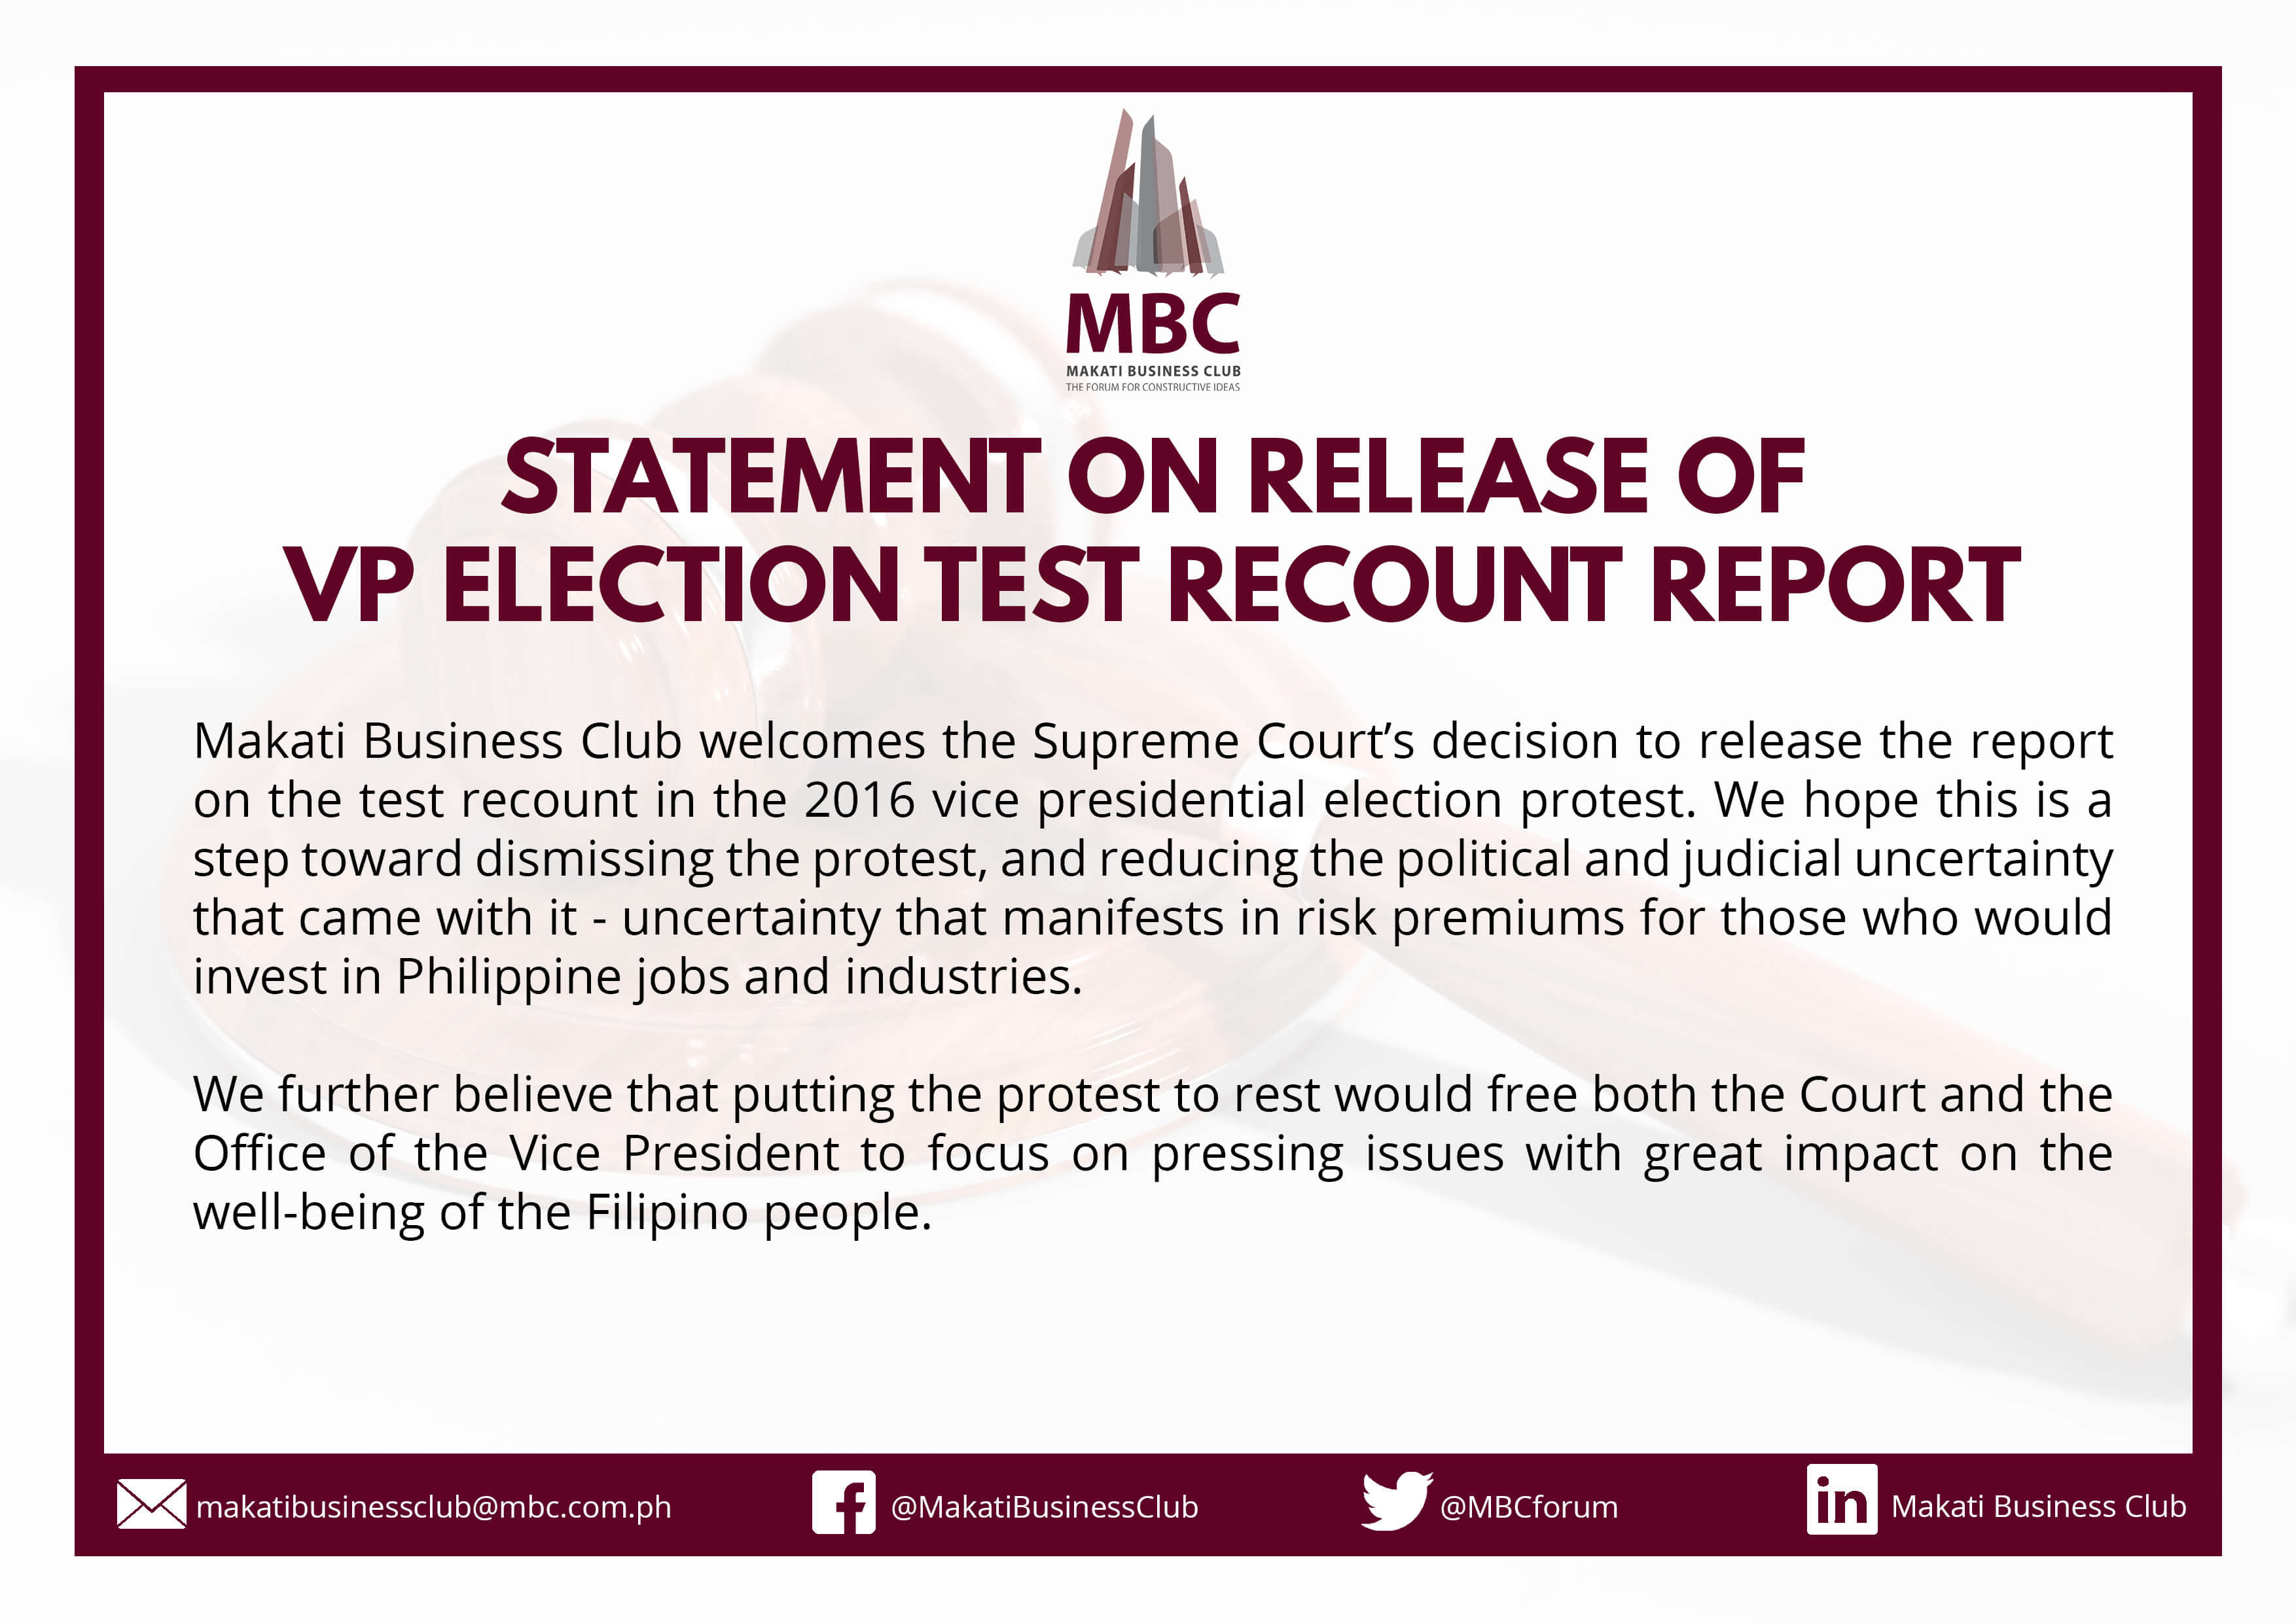 Statement on Release of VP Election Test Recount Report